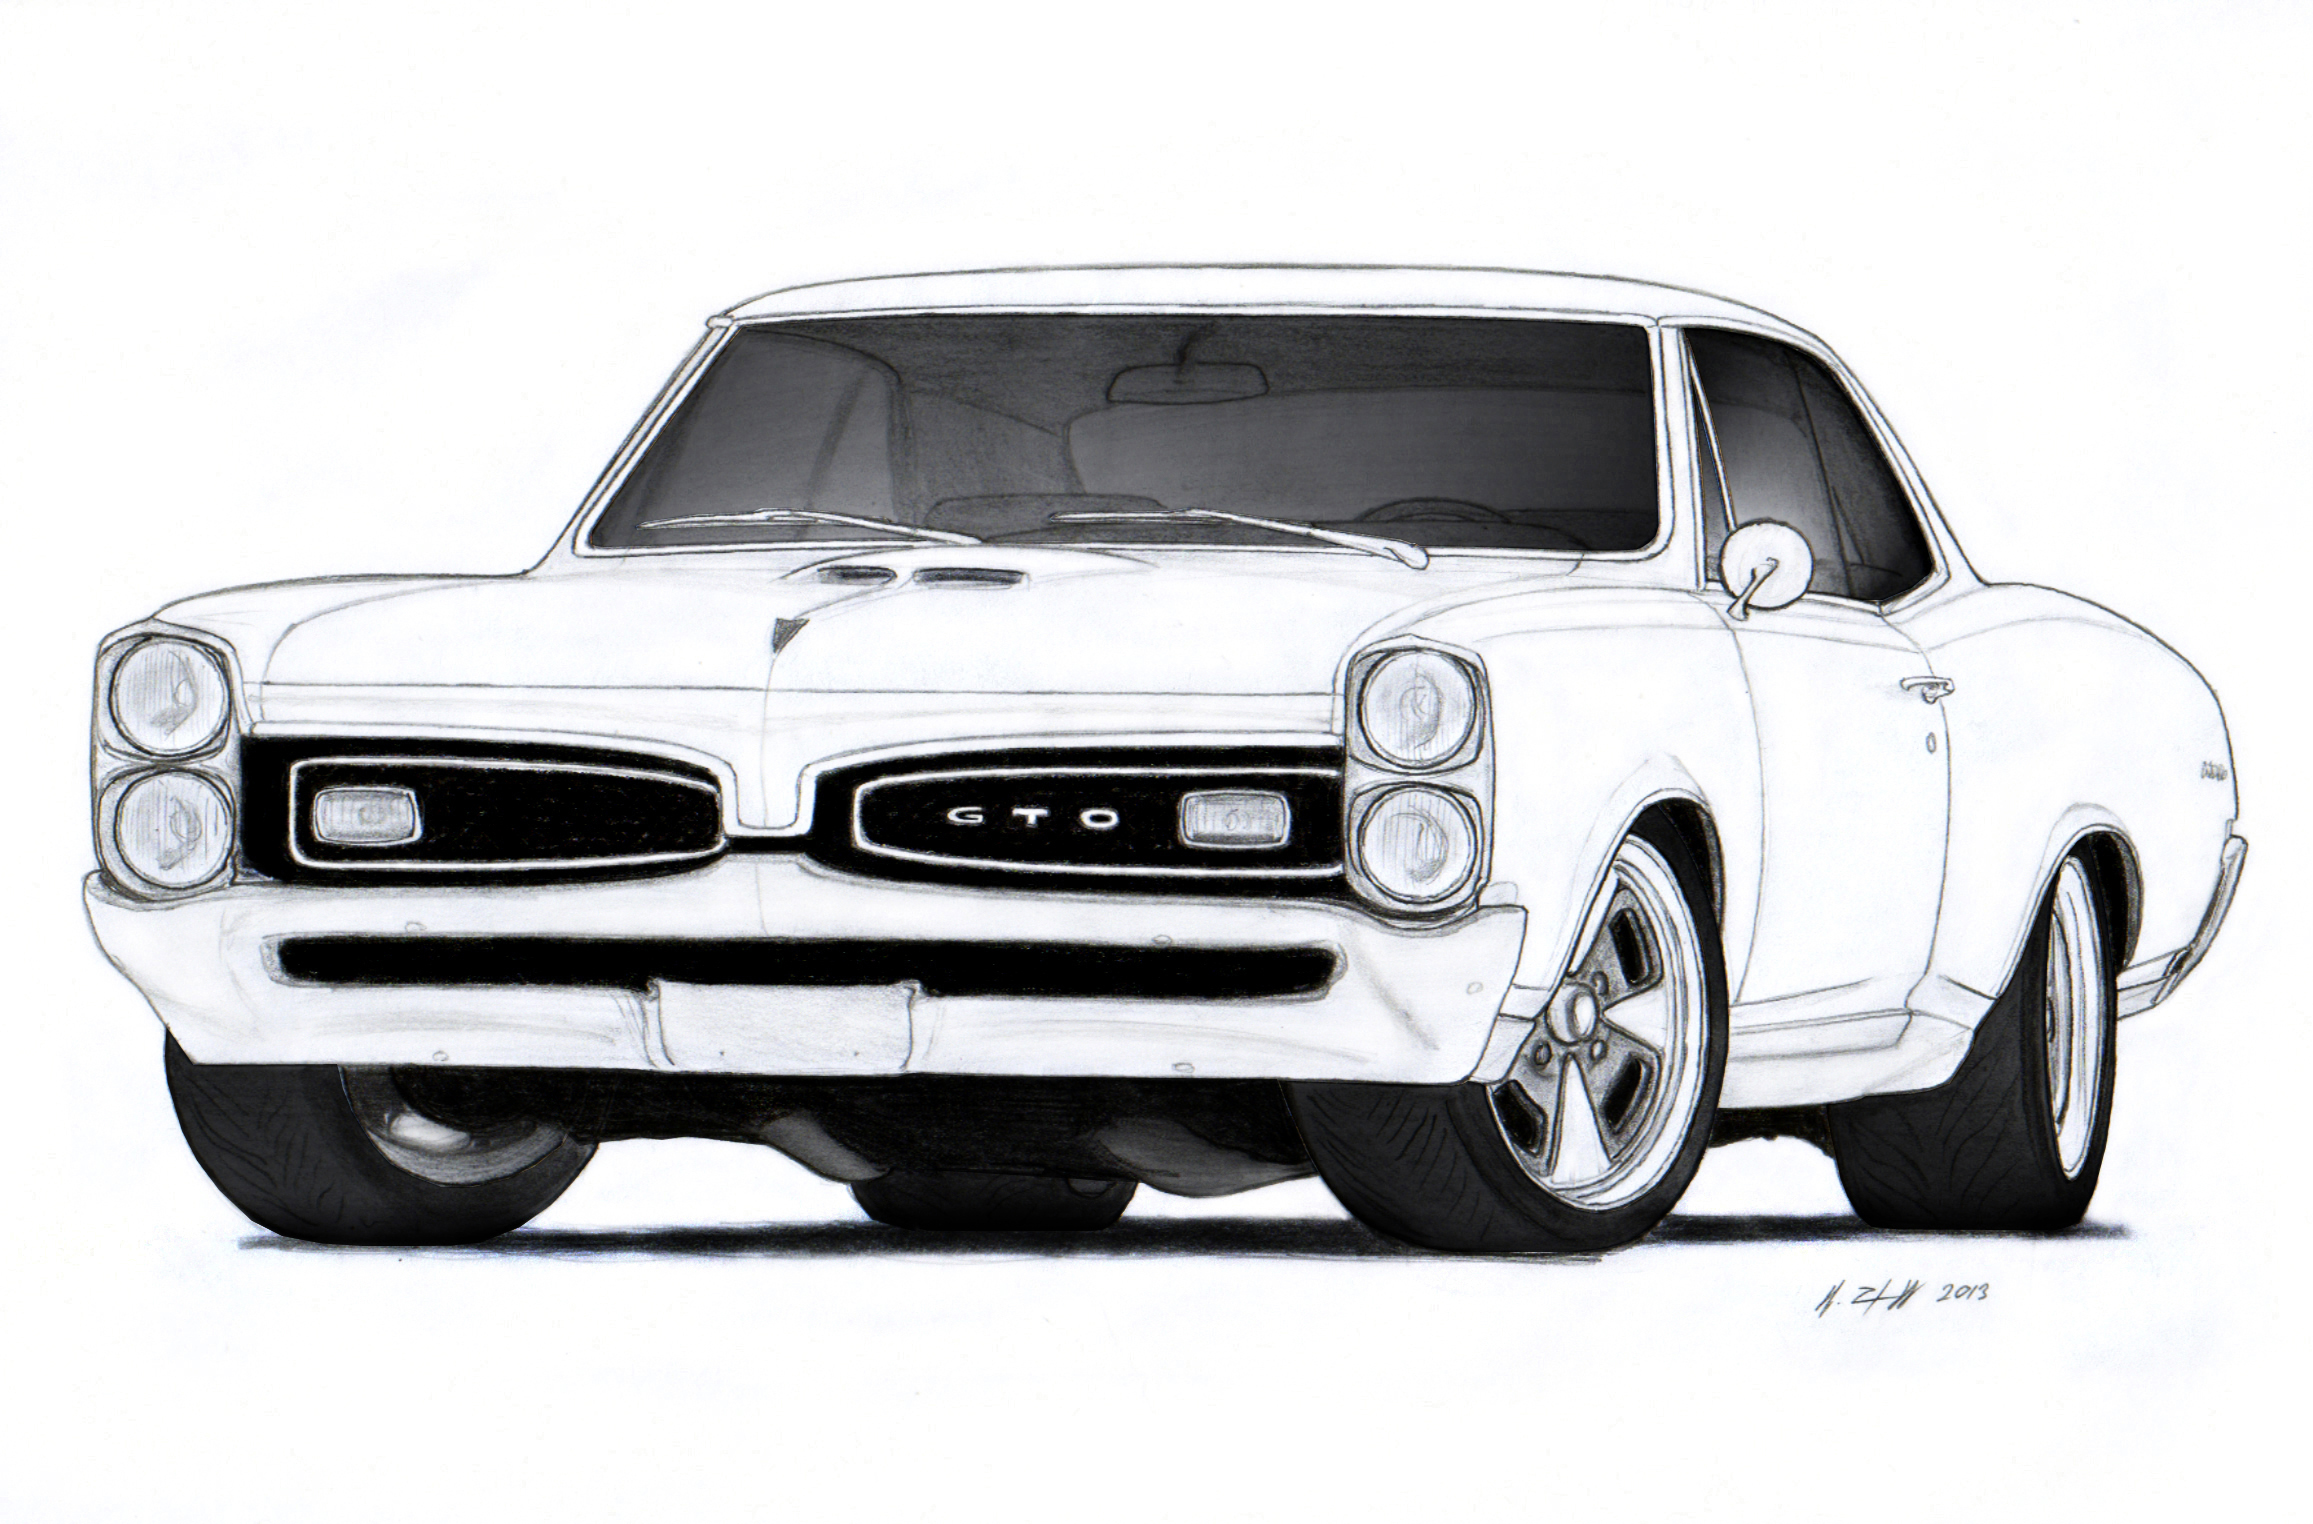 Some Pretty Cool Pencil Drawings In This Gallery